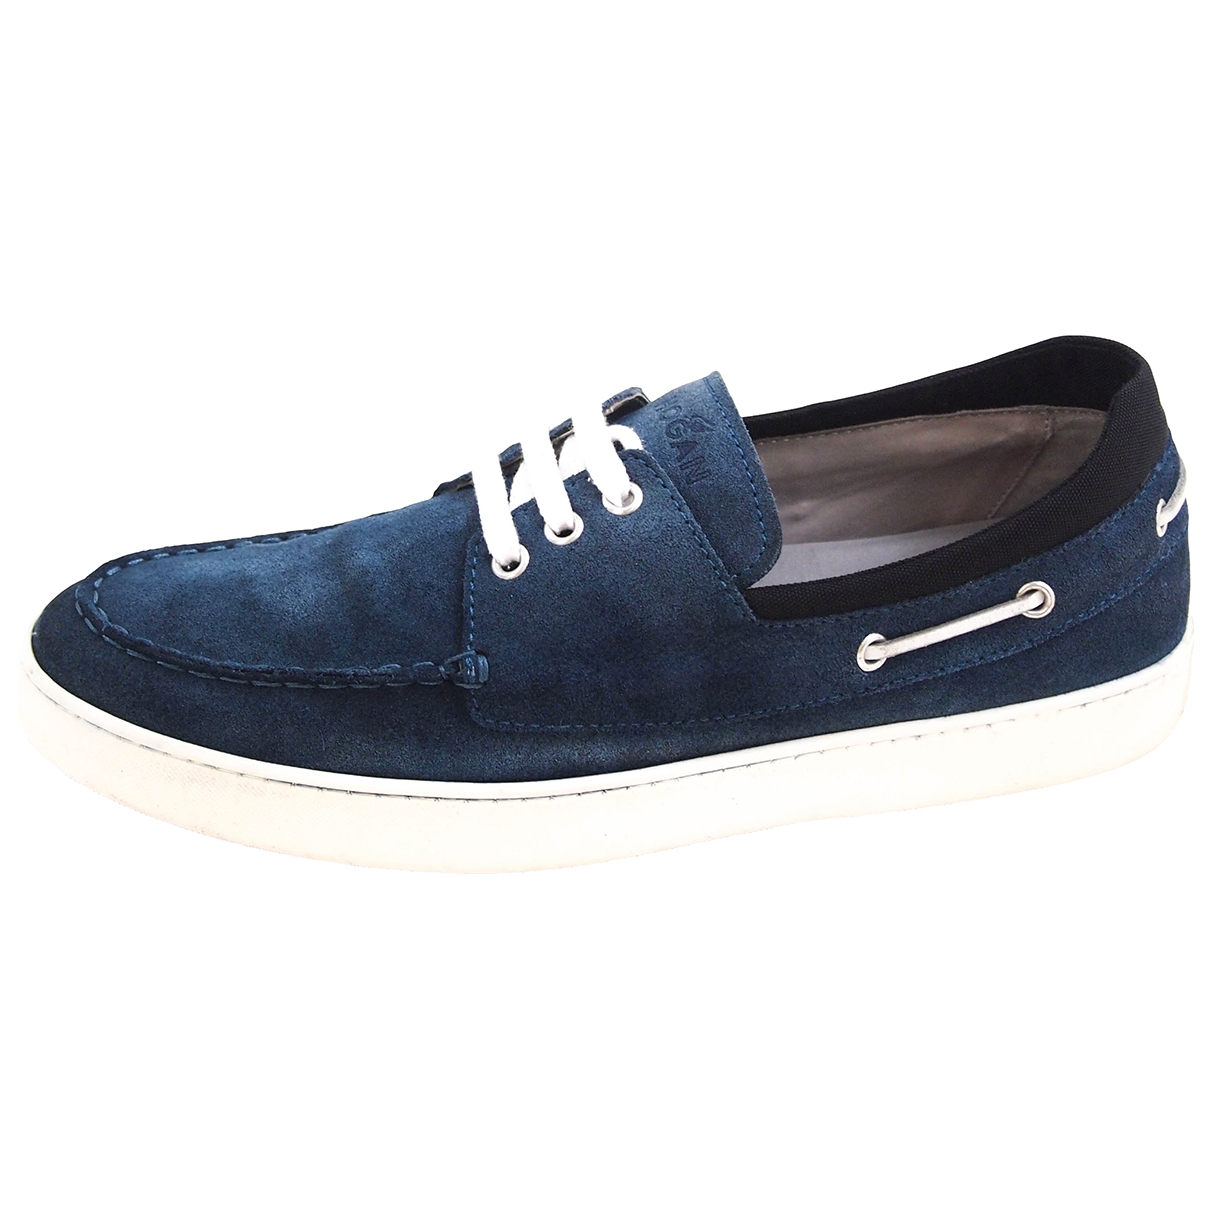 Hogan \N Sneakers in  Blau Veloursleder